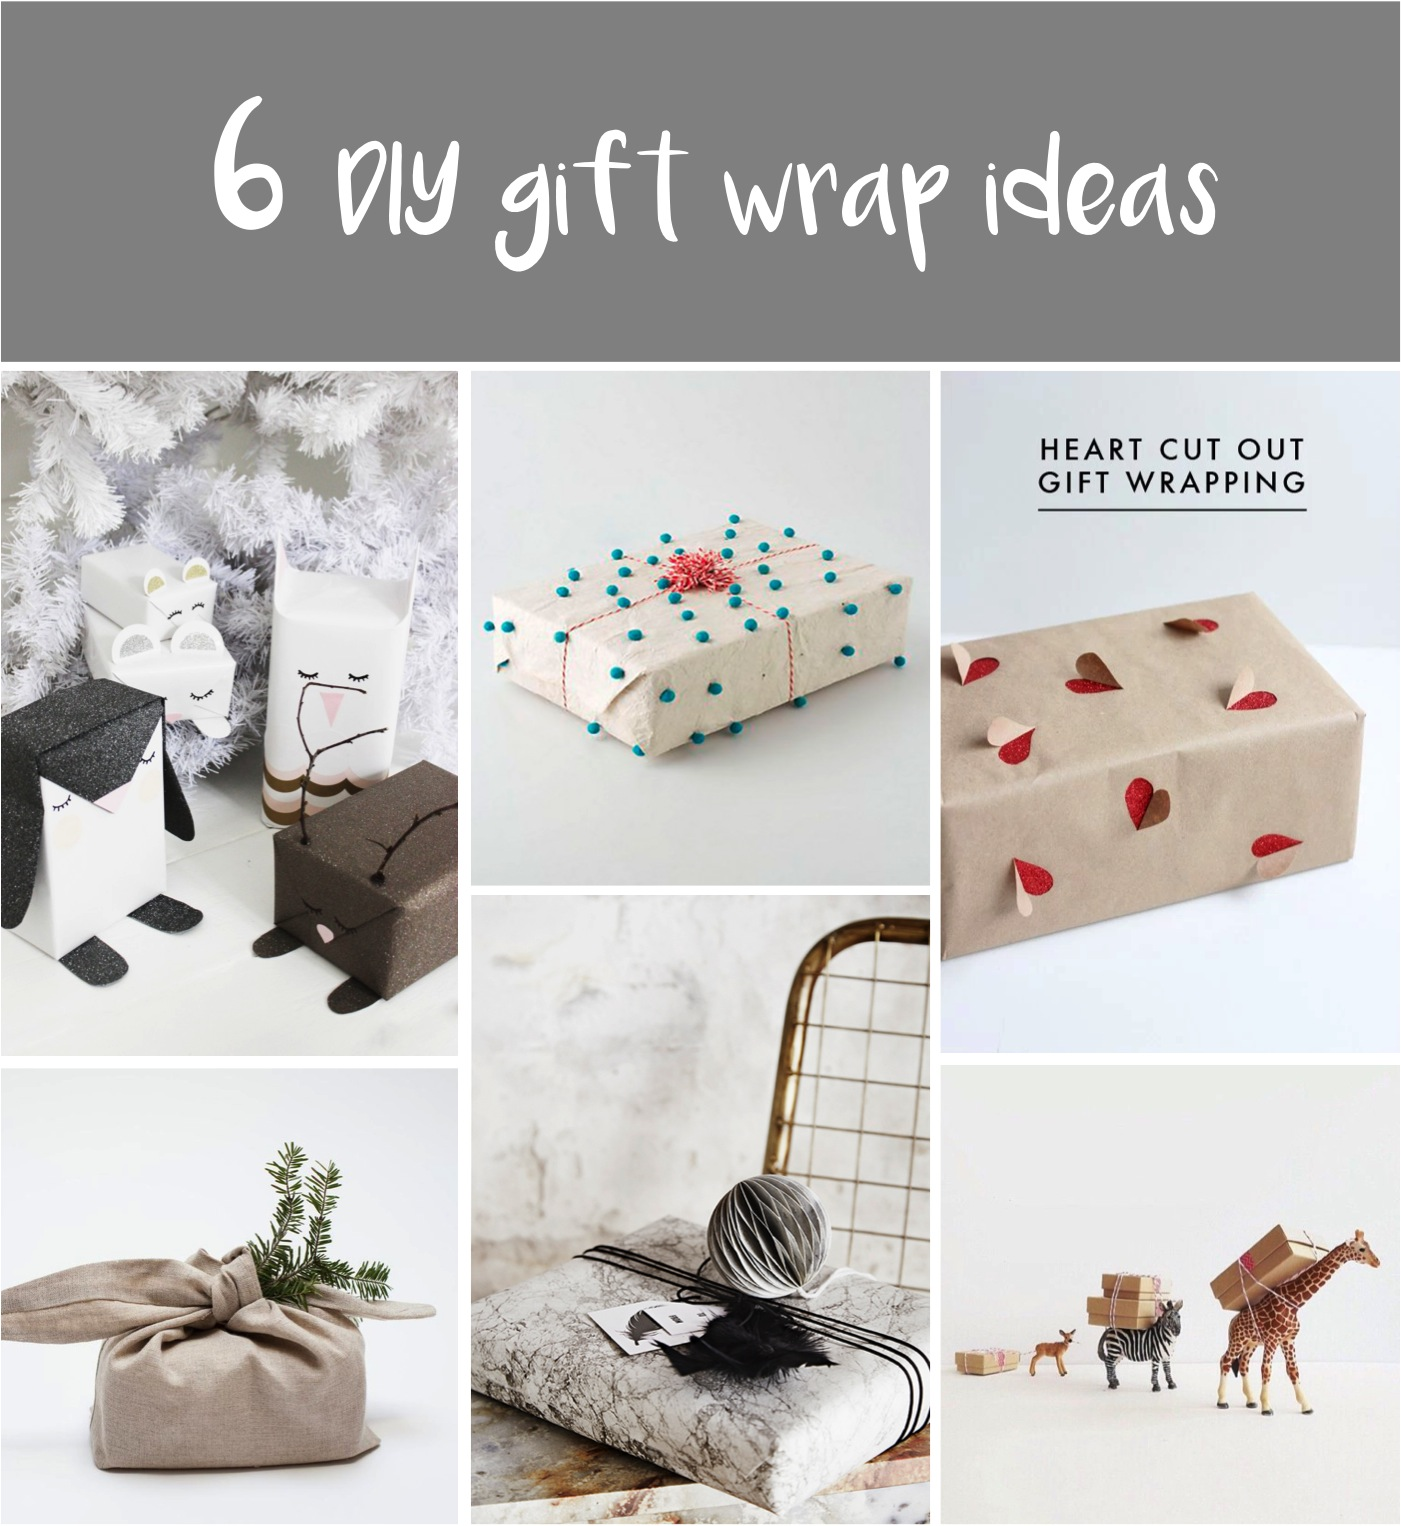 12 Home Decor Gift Ideas From Walmart: Its A Wrap: 6 Fun Ways To Wrap Your Christmas Gifts